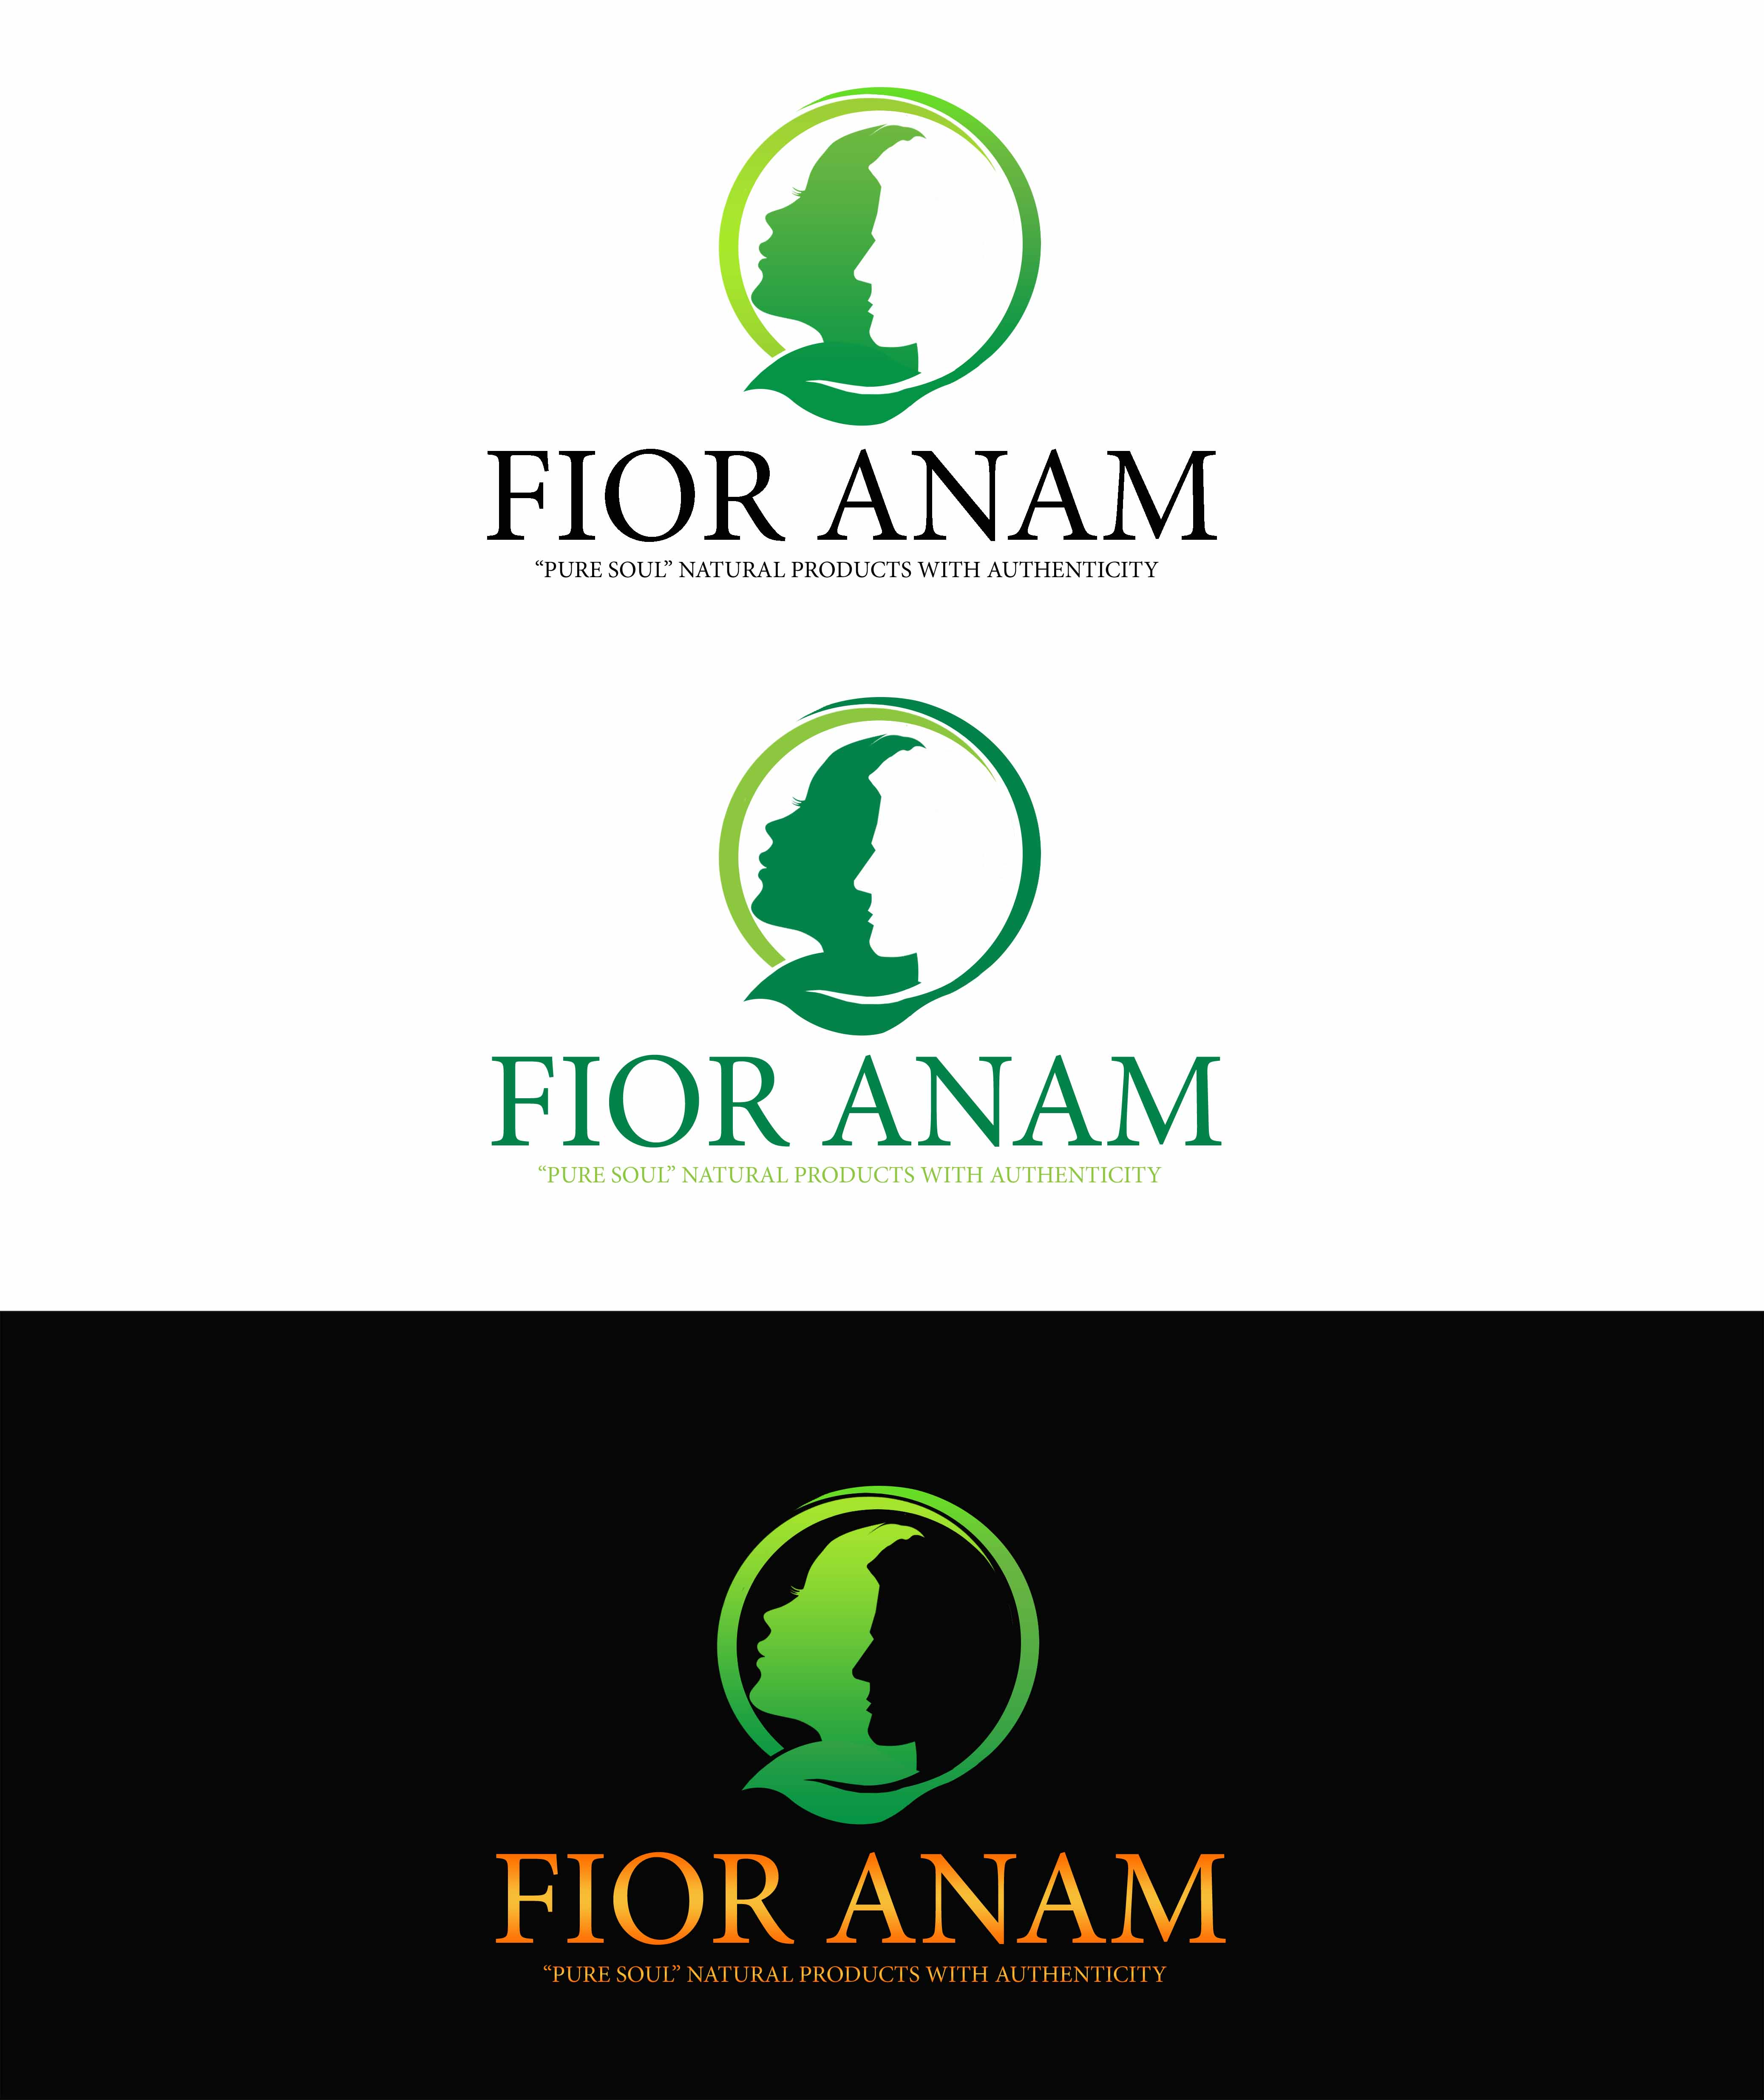 Logo Design by JSDESIGNGROUP - Entry No. 243 in the Logo Design Contest Creative Logo Design for Fior Anam.